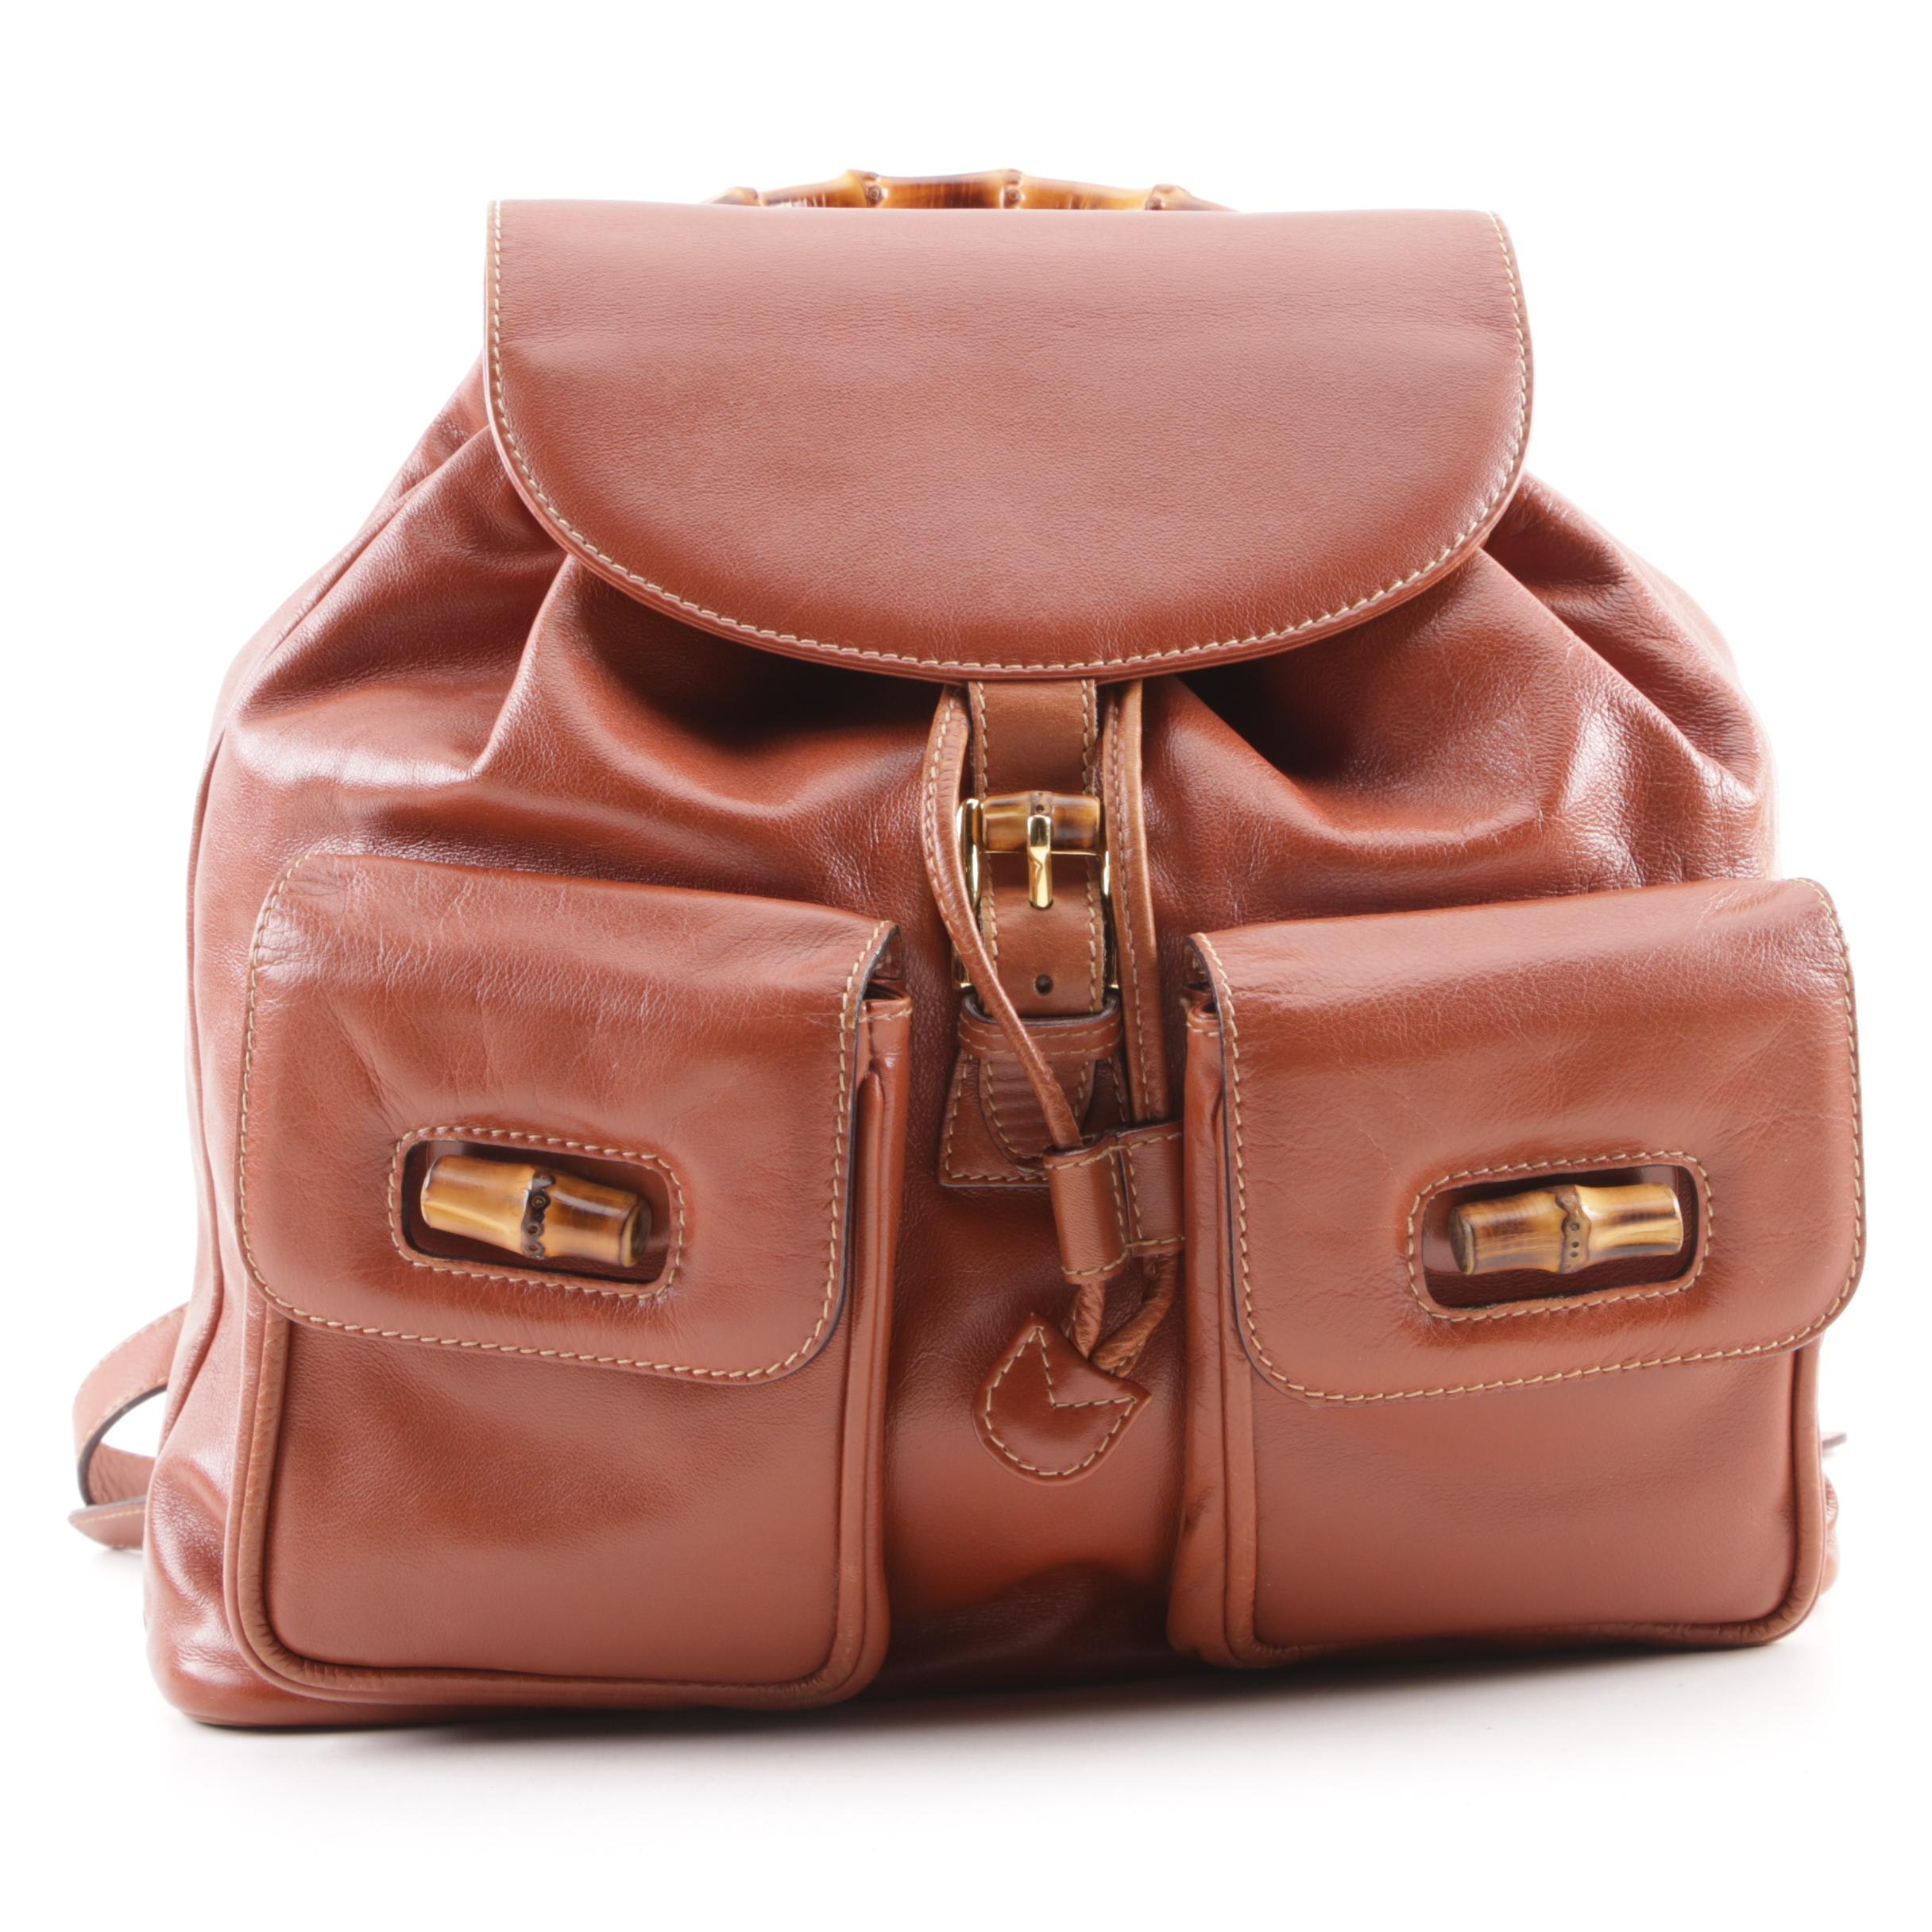 Gucci Cognac Leather Bamboo Backpack